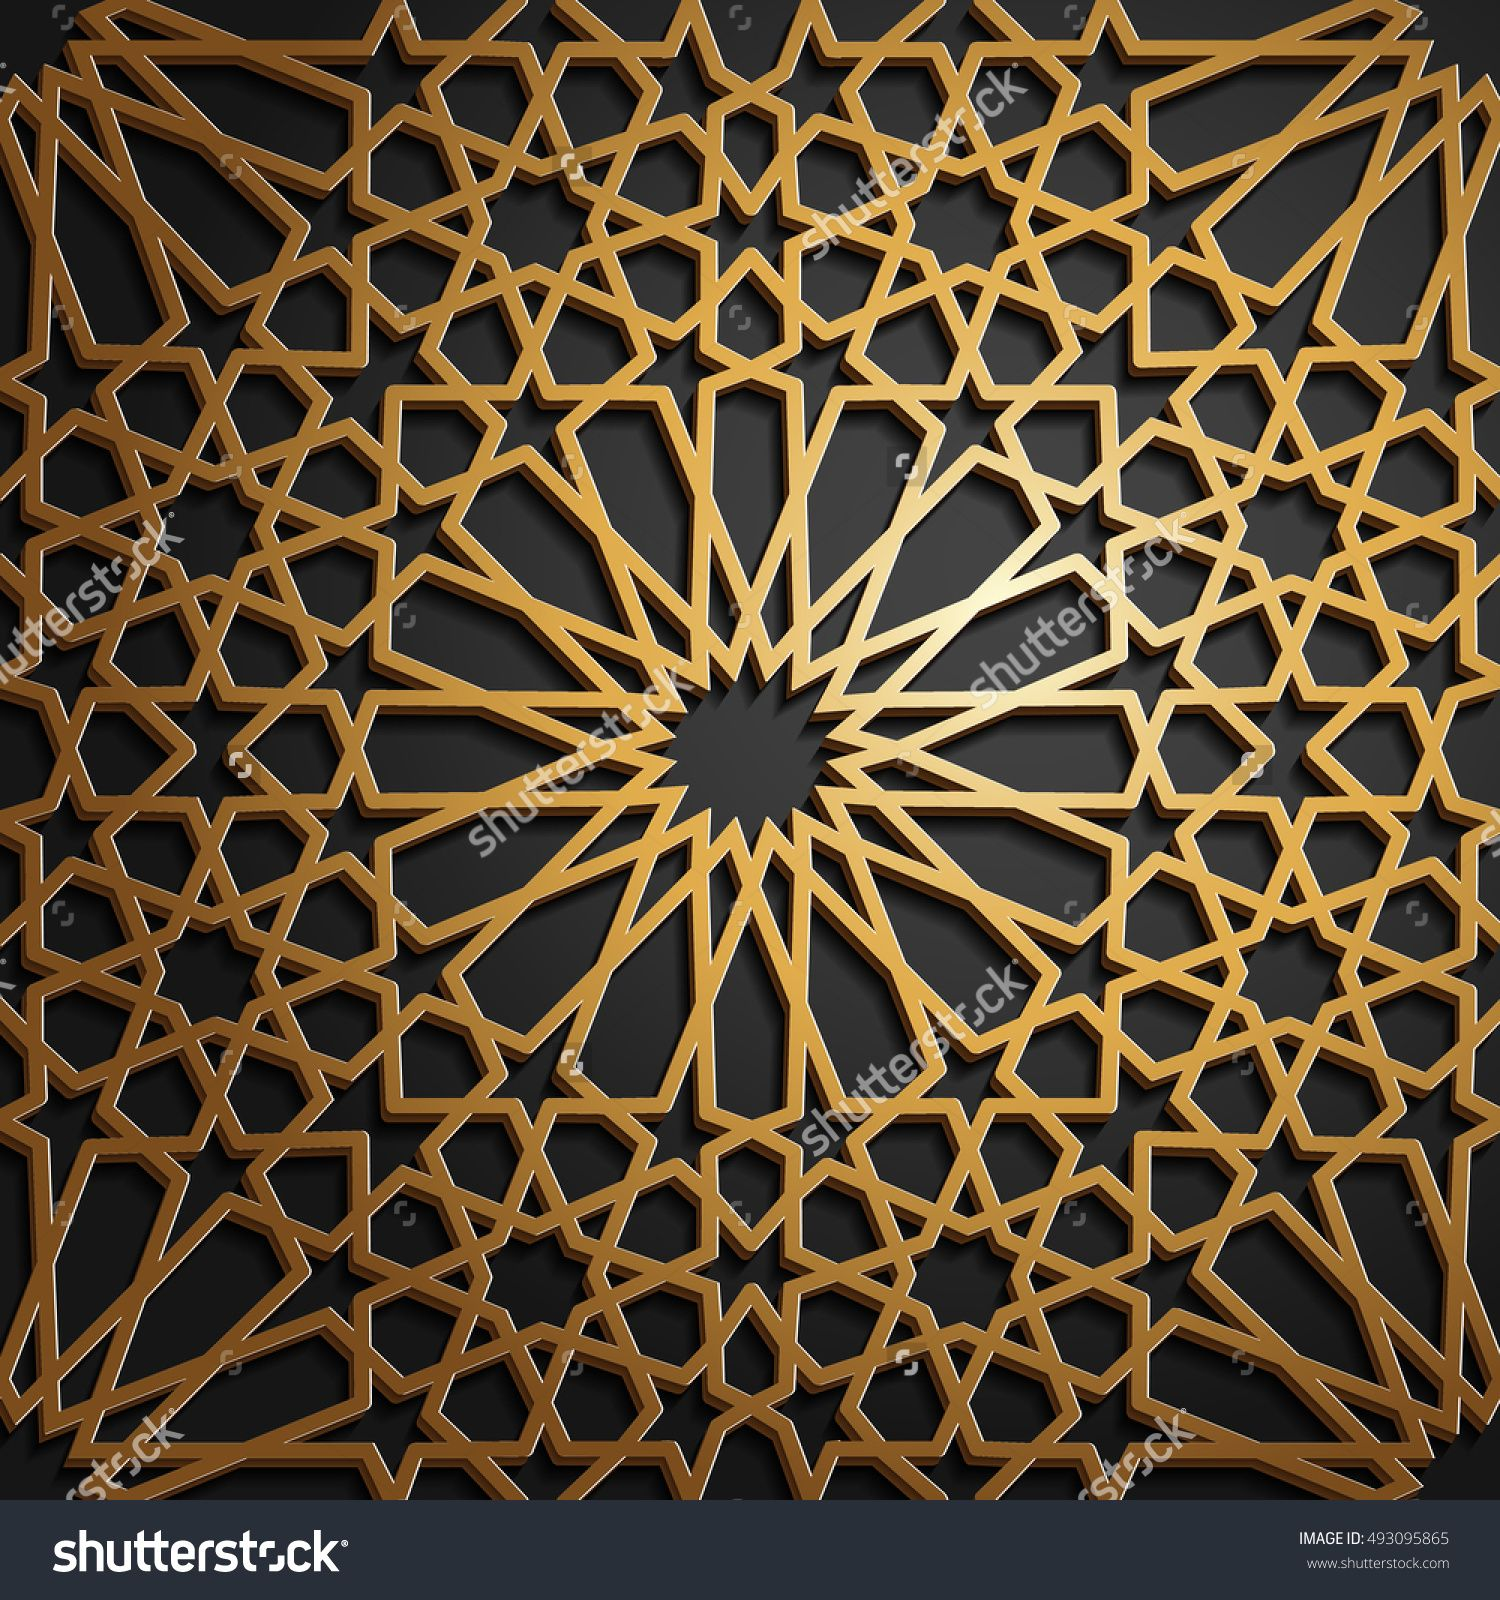 islamic oriental pattern abstract vector ornament vector muslim background east culture indian heritage arabesque persian motif 3d